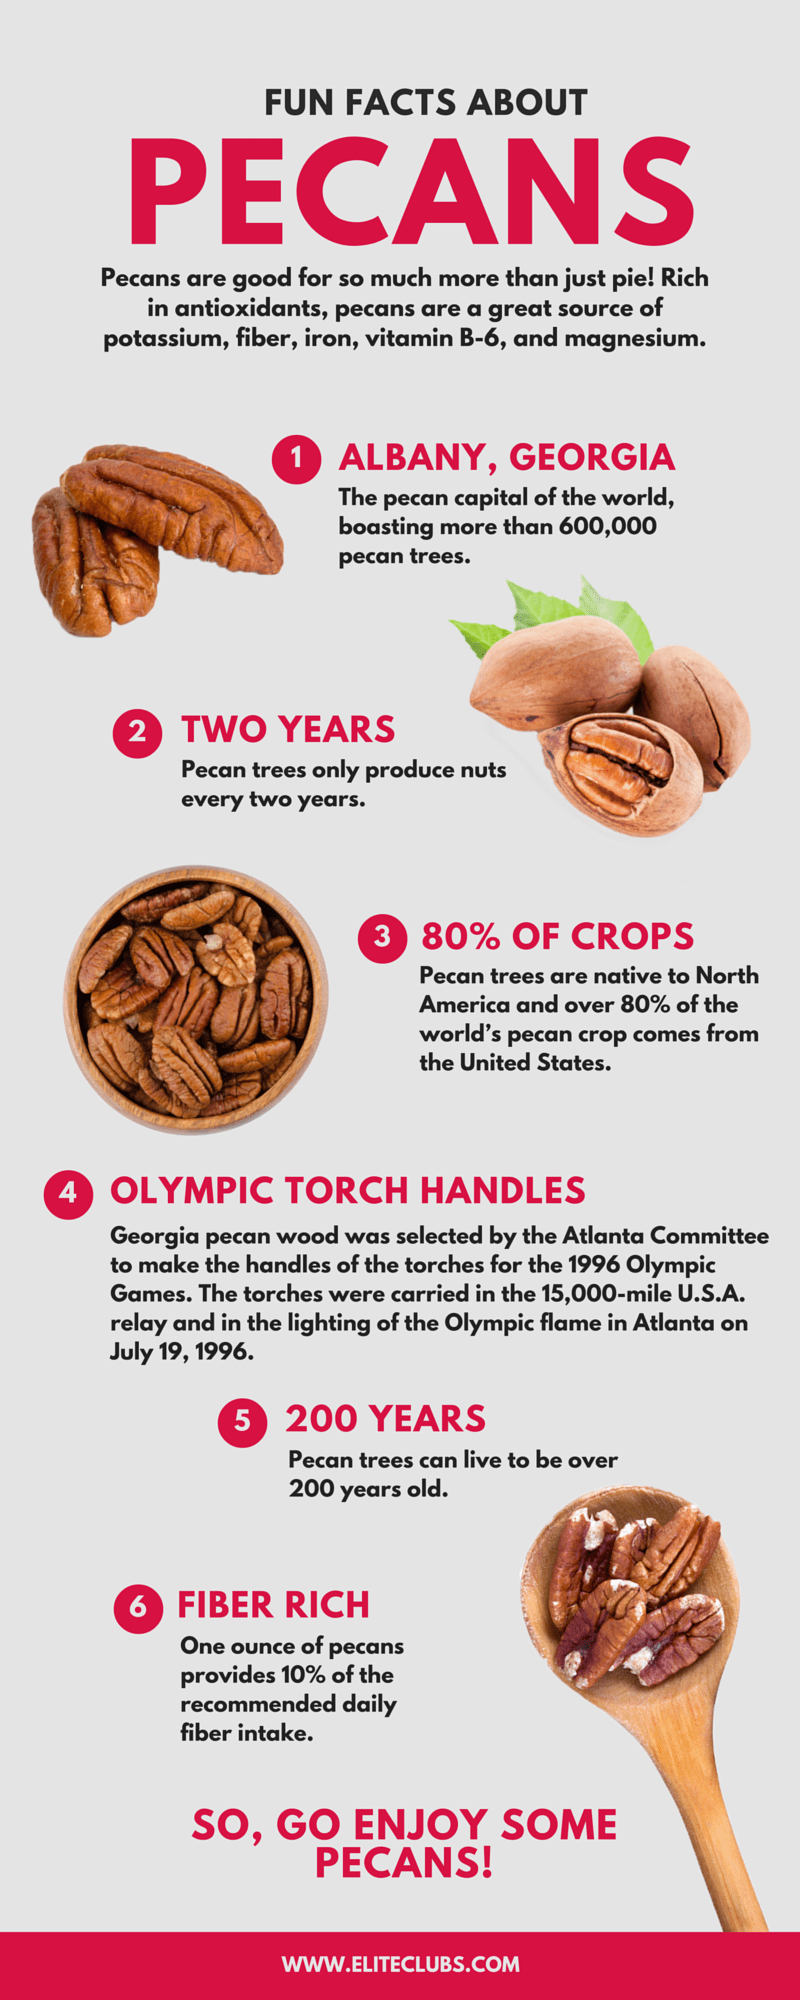 Fun Facts About Pecans Infographic